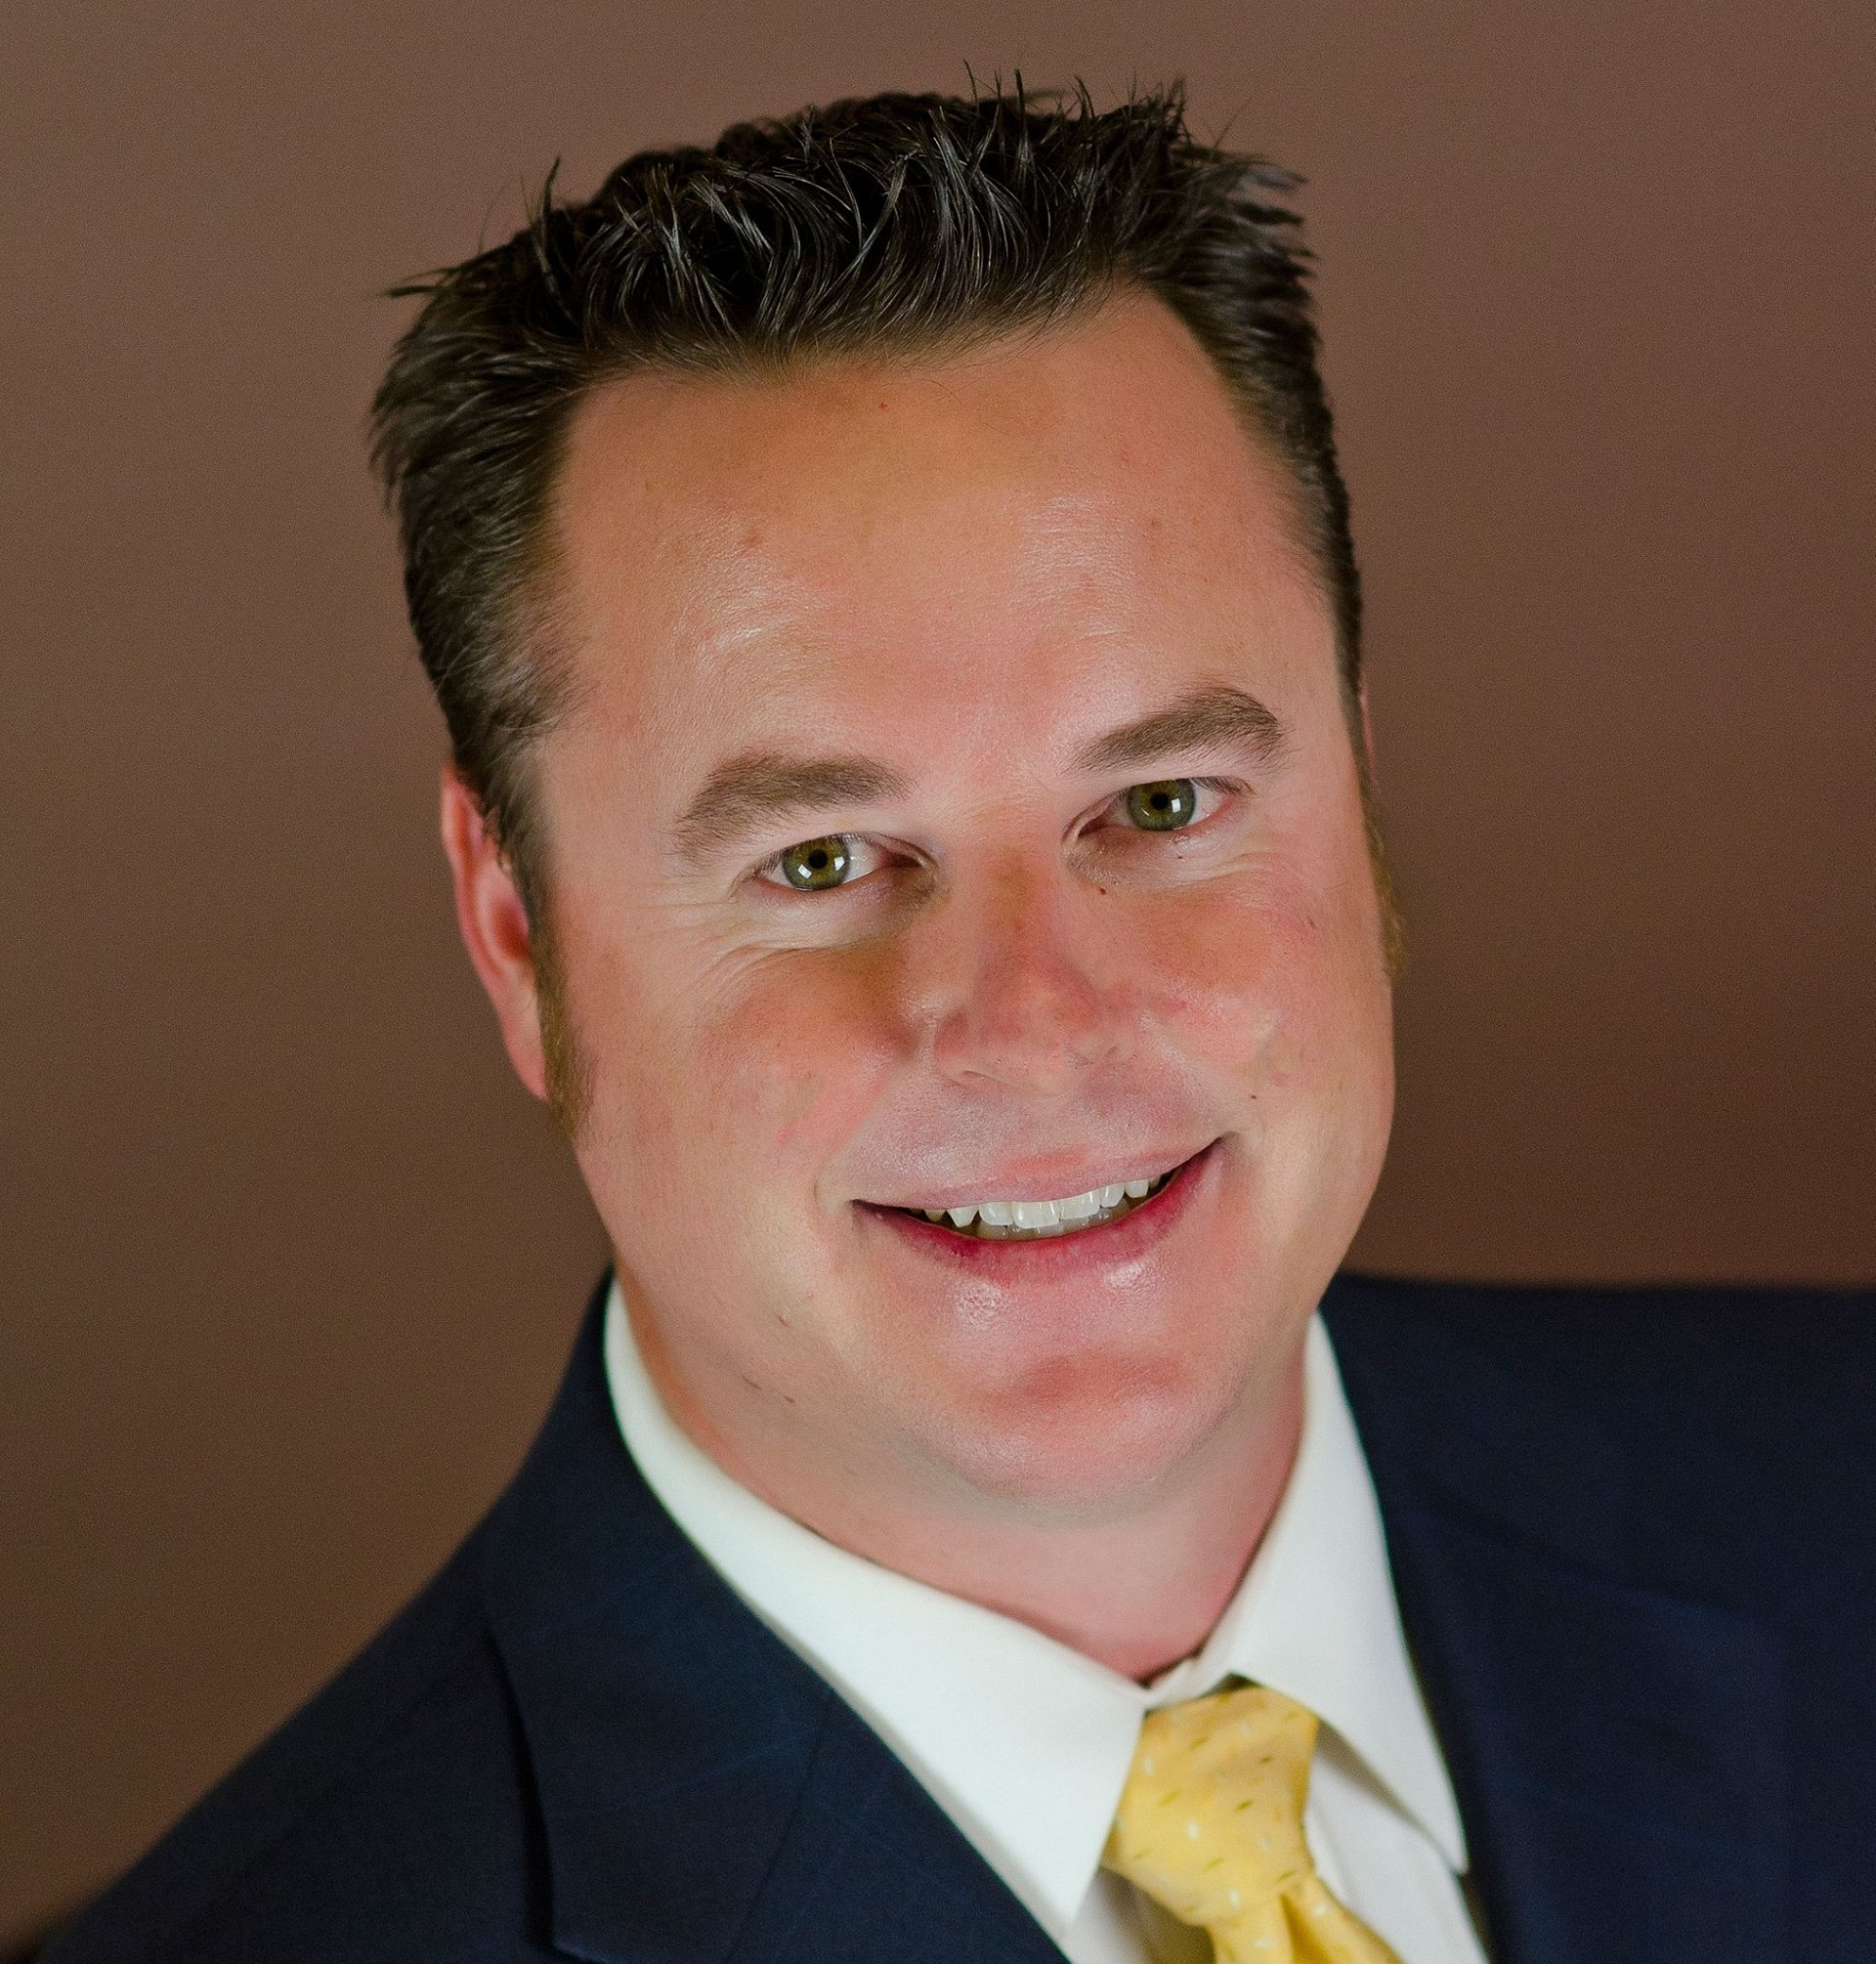 Coldwell Banker Residential Brokerage Announces Matthew Hauk as the New Branch Manager of All Temecula Valley Offices